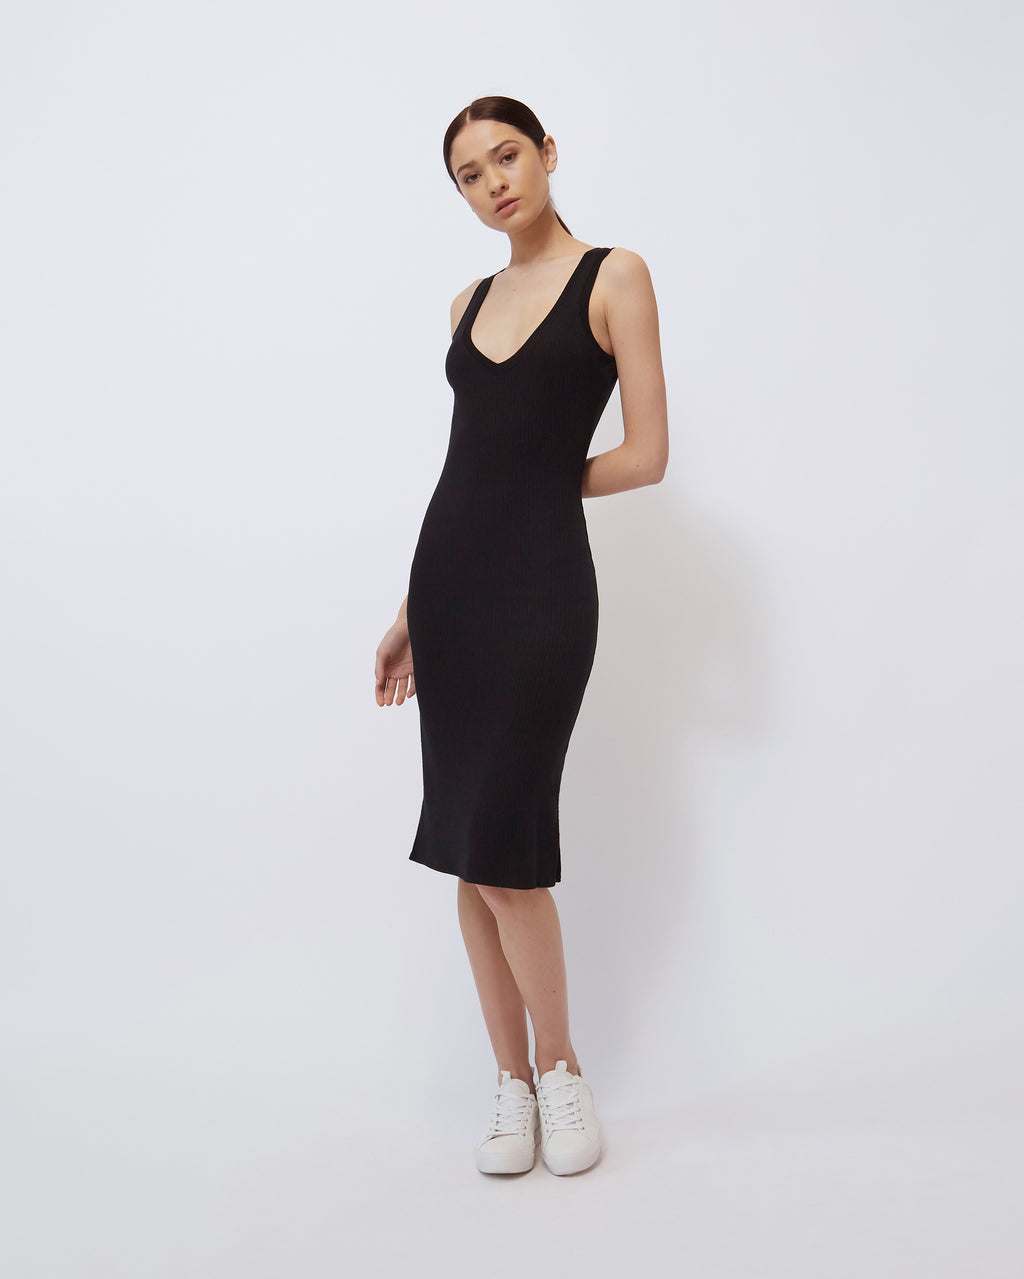 The Lyric Dress in Black